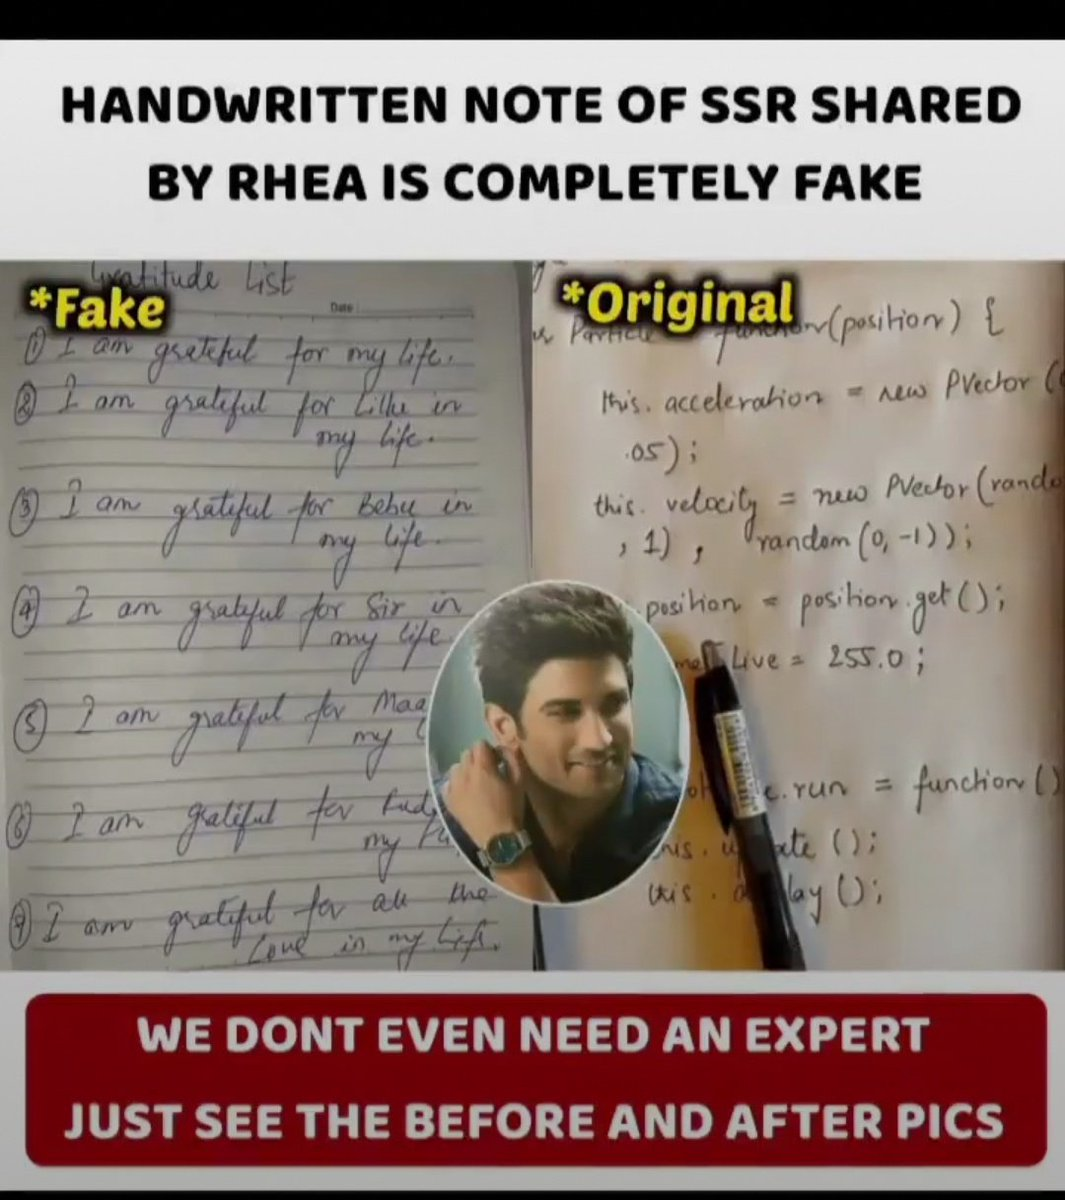 This is how @Tweet2Rhea is fake atleast you can match the handwriting so that it is easy to believe your lie..even 1% also doesn't match with sushant's handwriting..untill justice is prevail we'll fight for him #SSR #SSRKilledOn14June #Warriors4SSR @Swamy39 @shwetasinghkirtpic.twitter.com/1DN5qAHMua